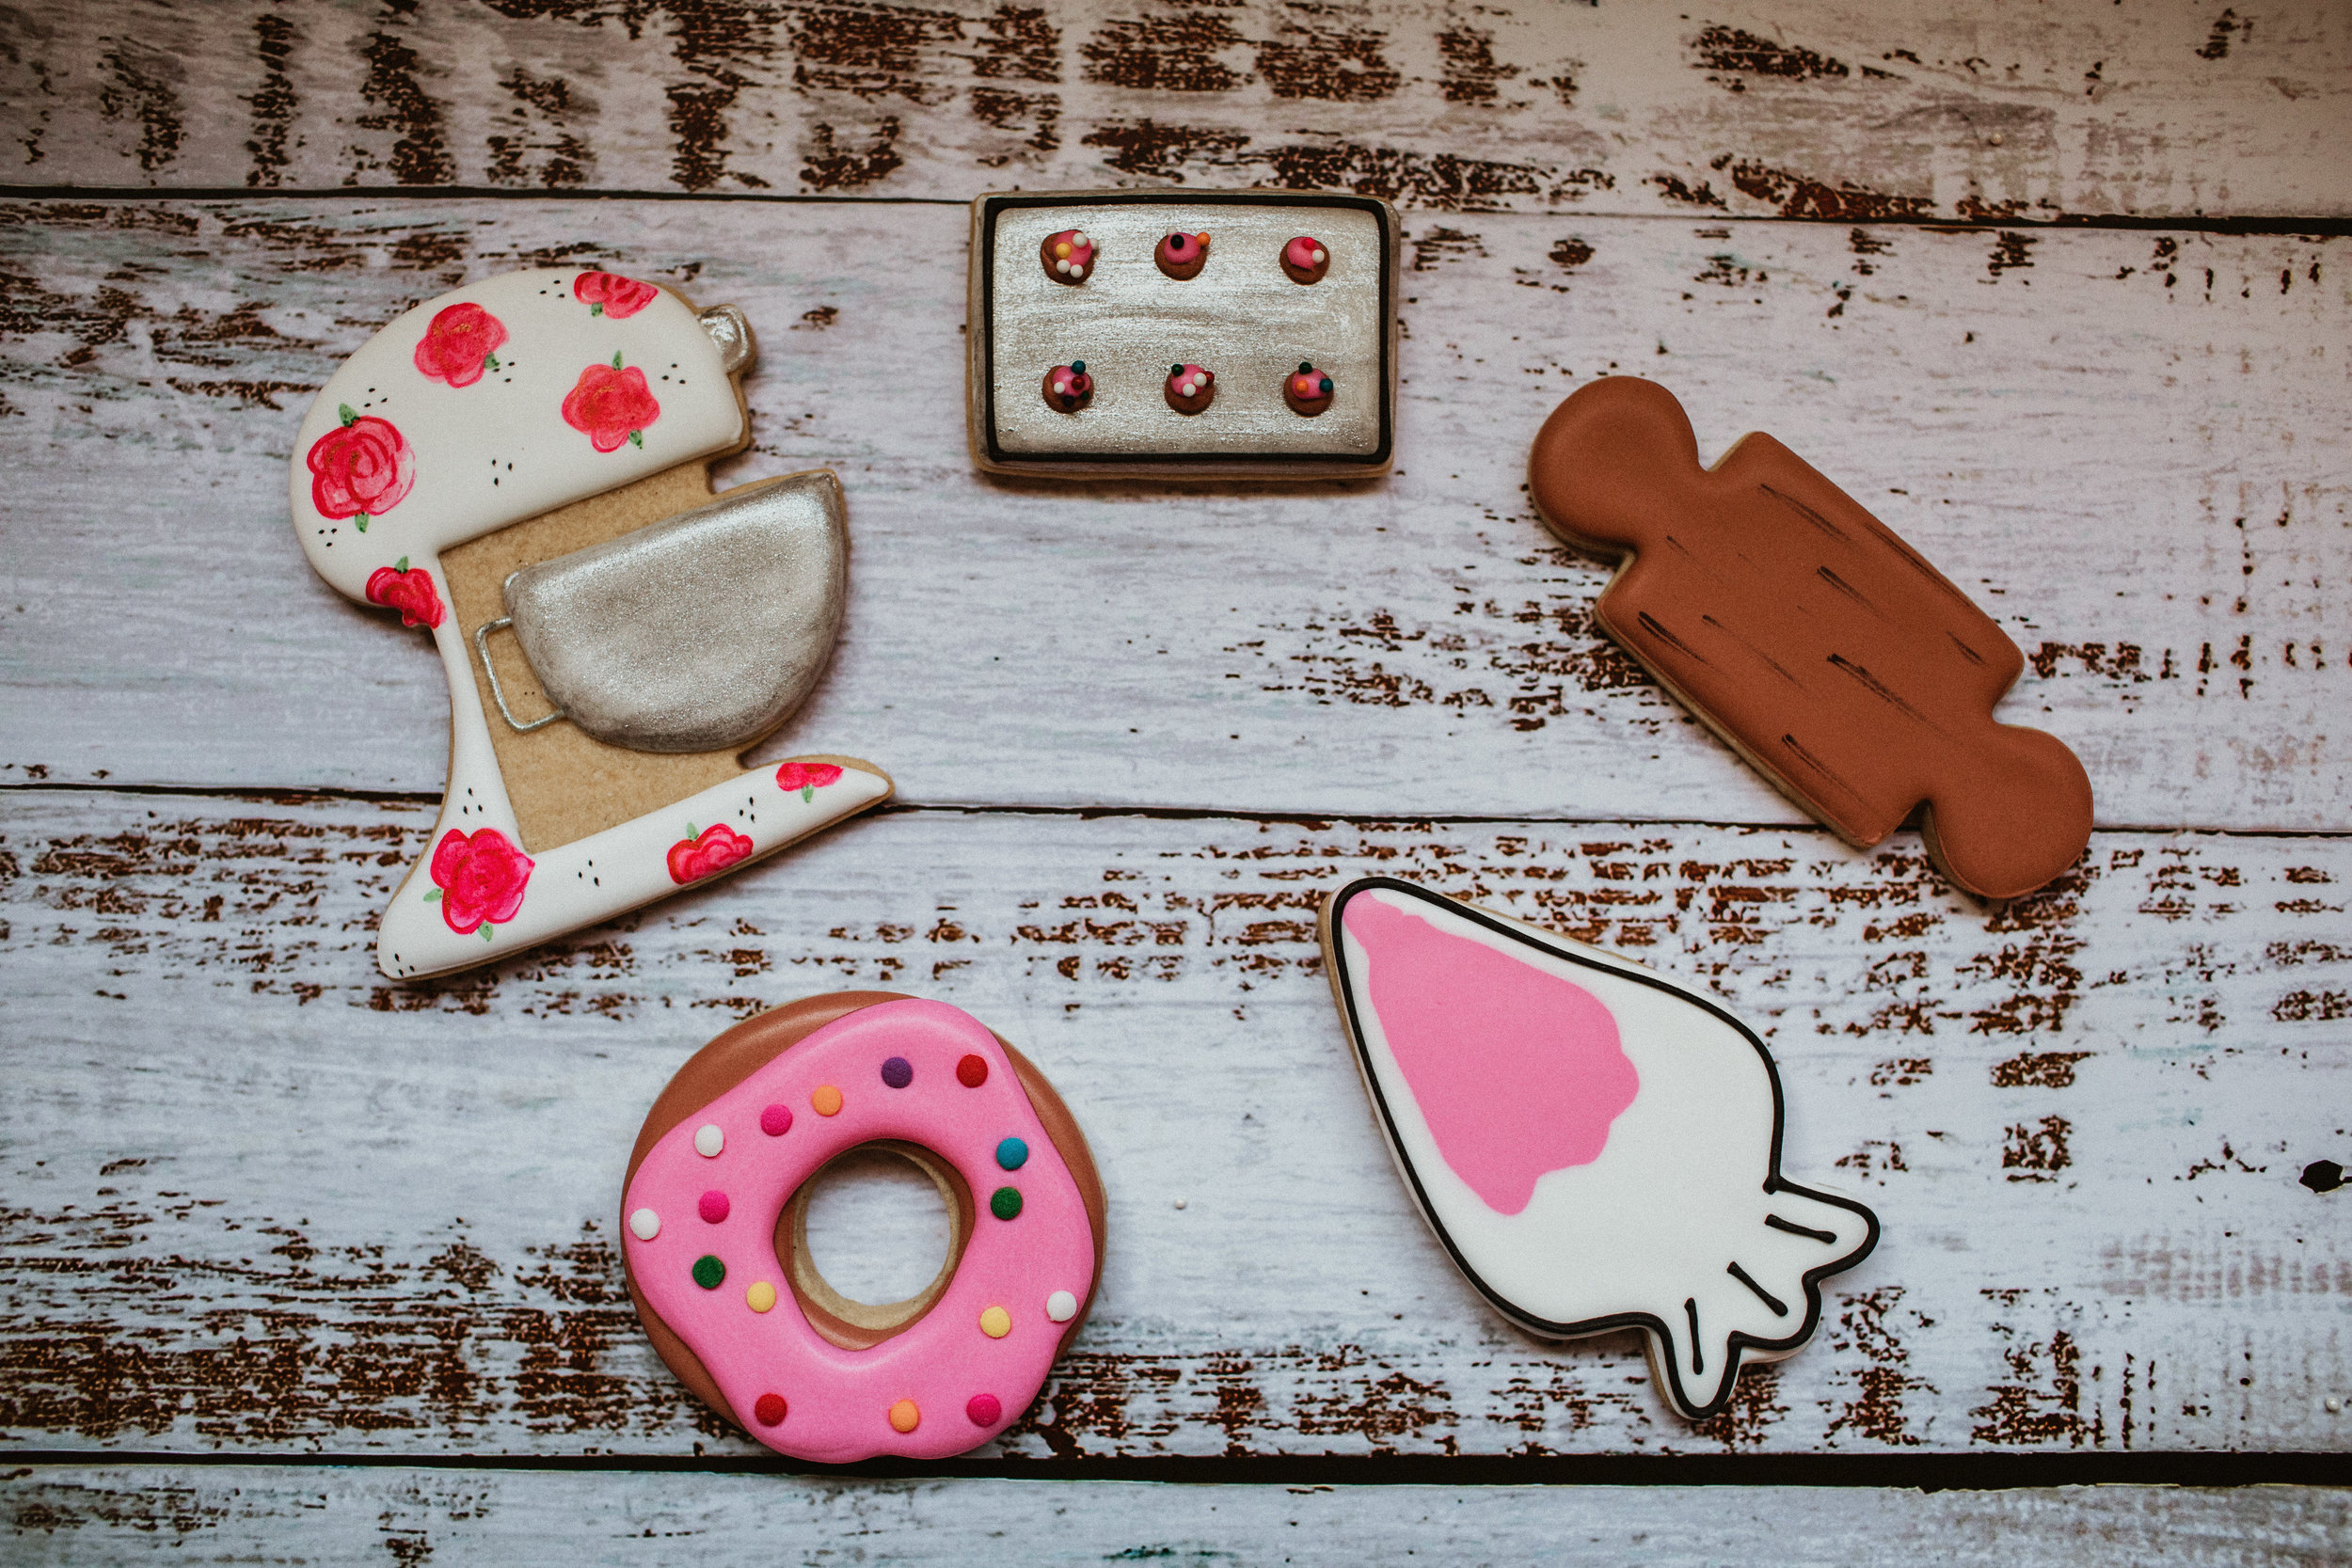 Baker Babe Cookie Co. uses all recyclable, degradable, and eco friendly packaging. -